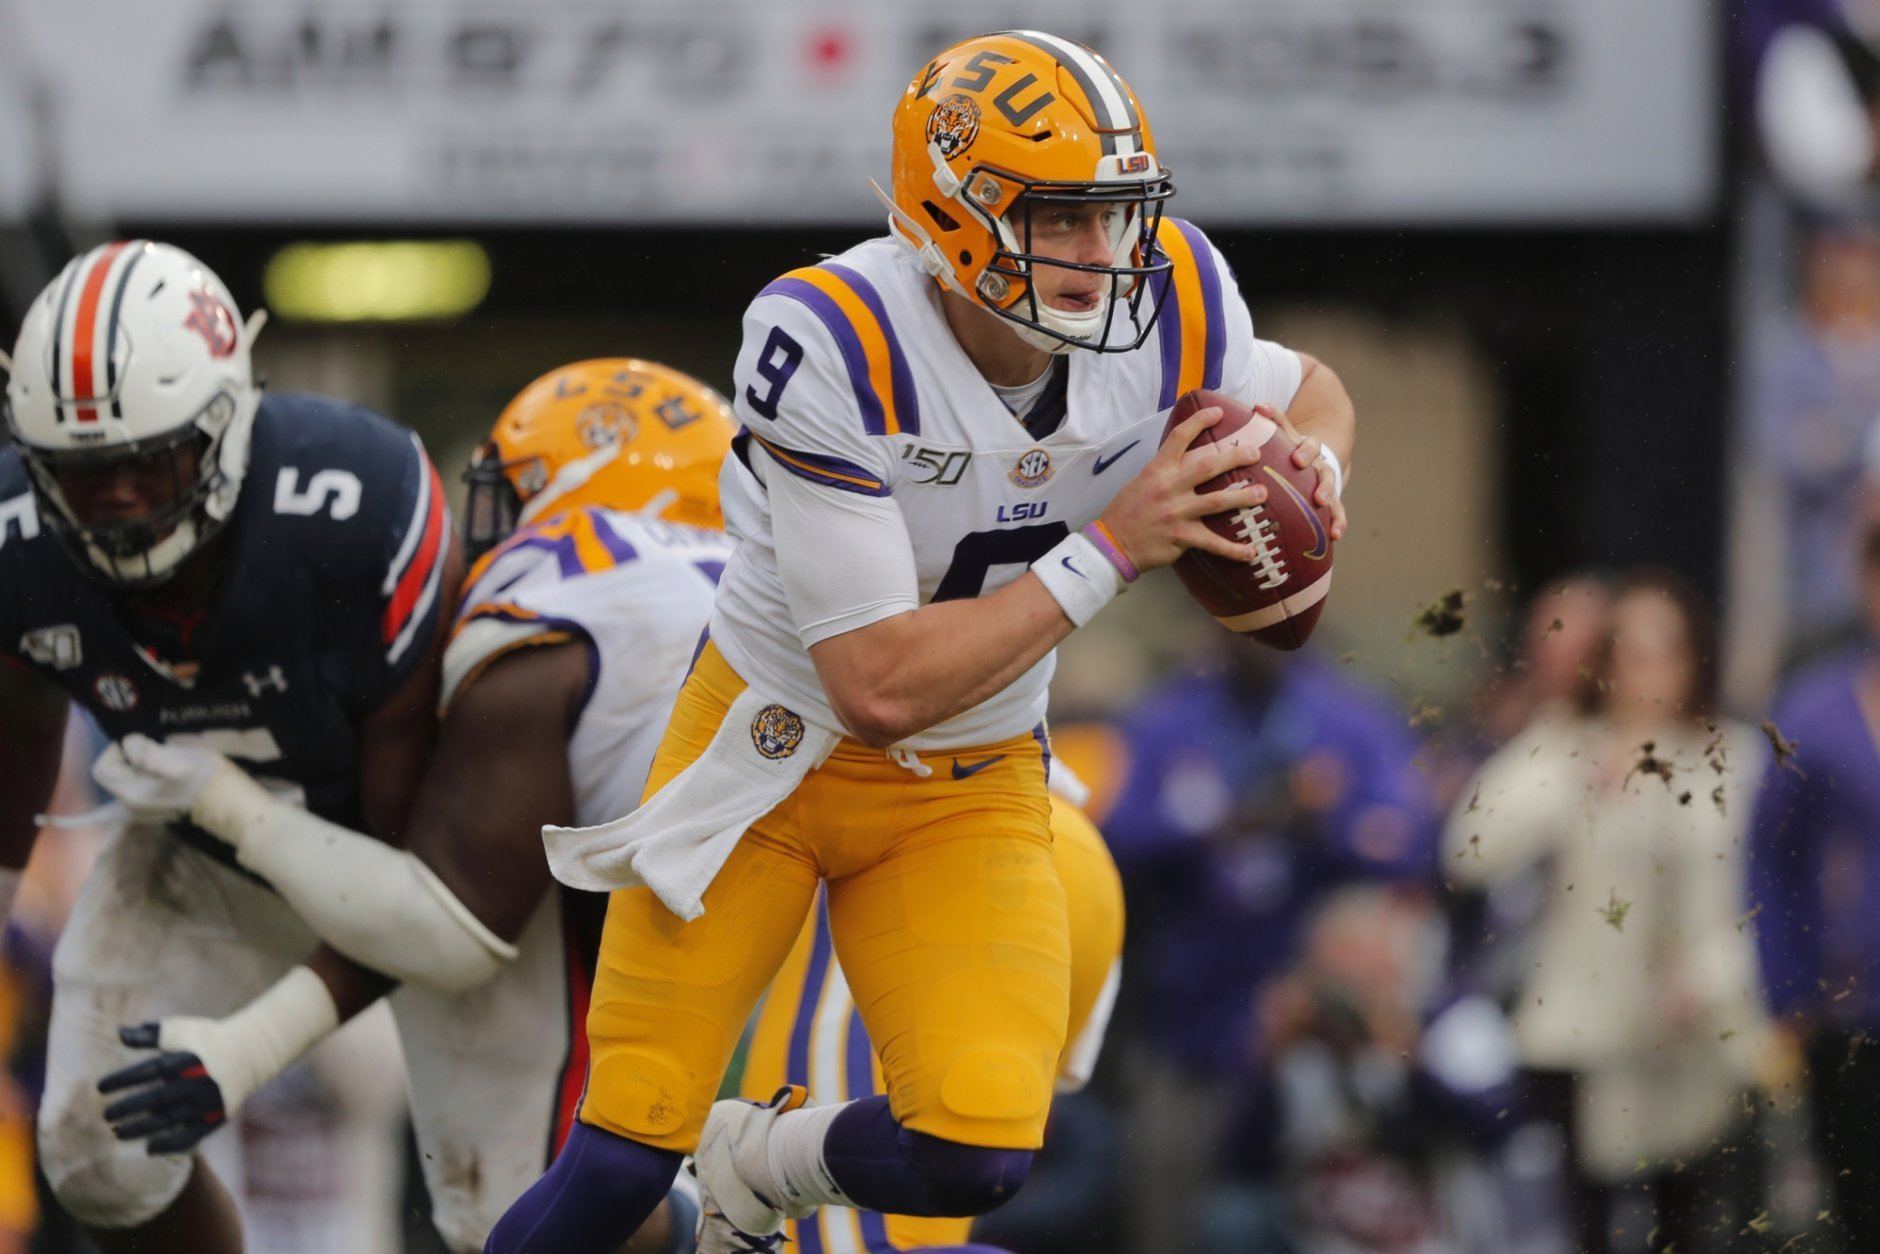 <p><strong>No. 2 LSU (8-0):</strong> Beat Alabama, Win SEC title</p> <p>There's a chance, like 'Bama, that LSU could get away with losing Saturday's matchup, but it would rest on a lot of other things going haywire. If the Tigers can beat the Crimson Tide, they'll control the path to the SEC West title, even with an unlikely slip-up in the final three weeks. Either as an undefeated or one-loss SEC champ, they're in.</p>